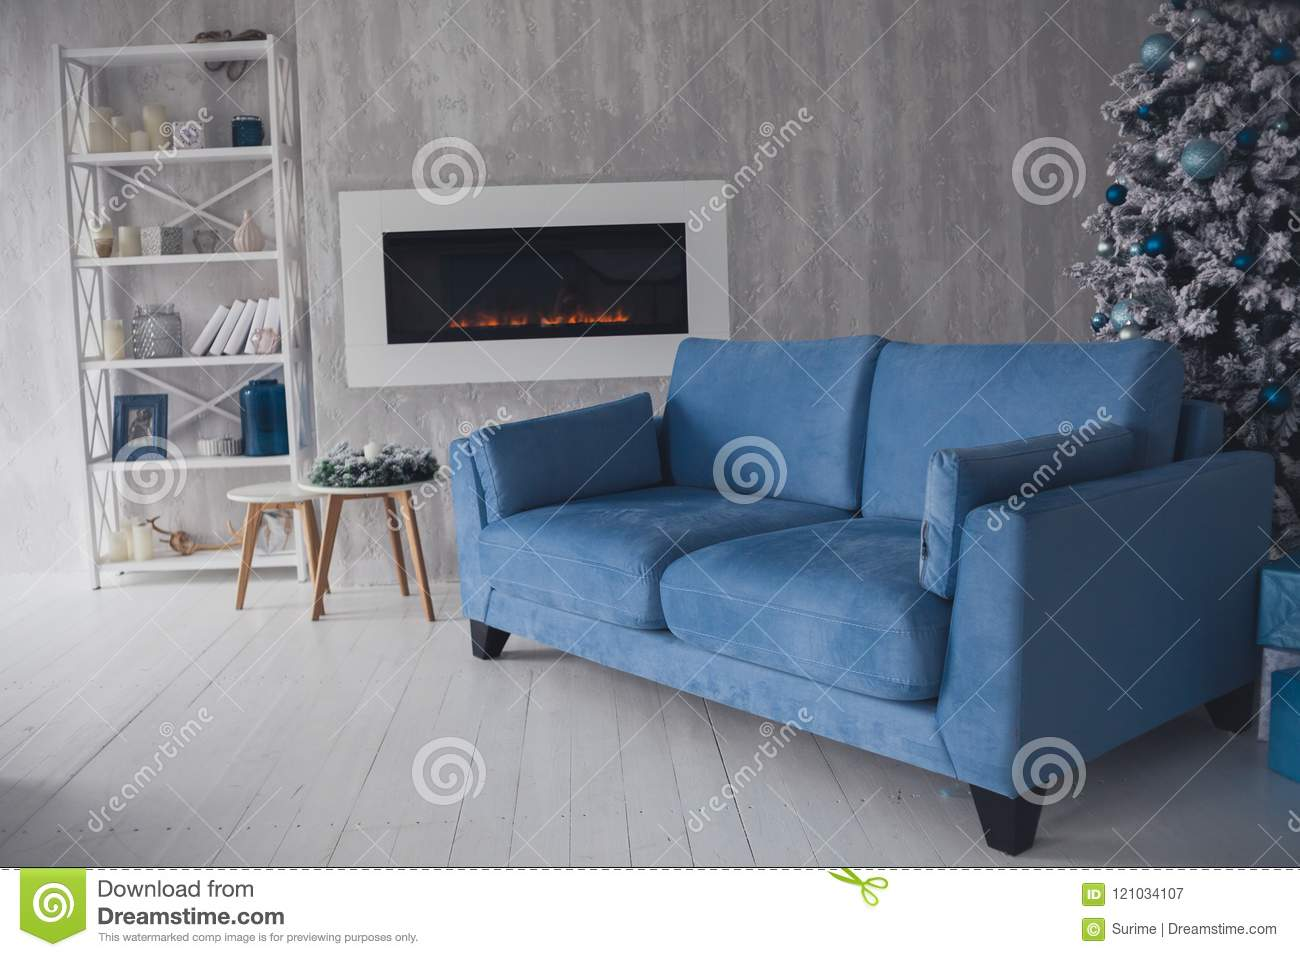 Scandinavian Living Room With Blue Sofa Stock Image Image Of Fireplace Scandinavian 121034107